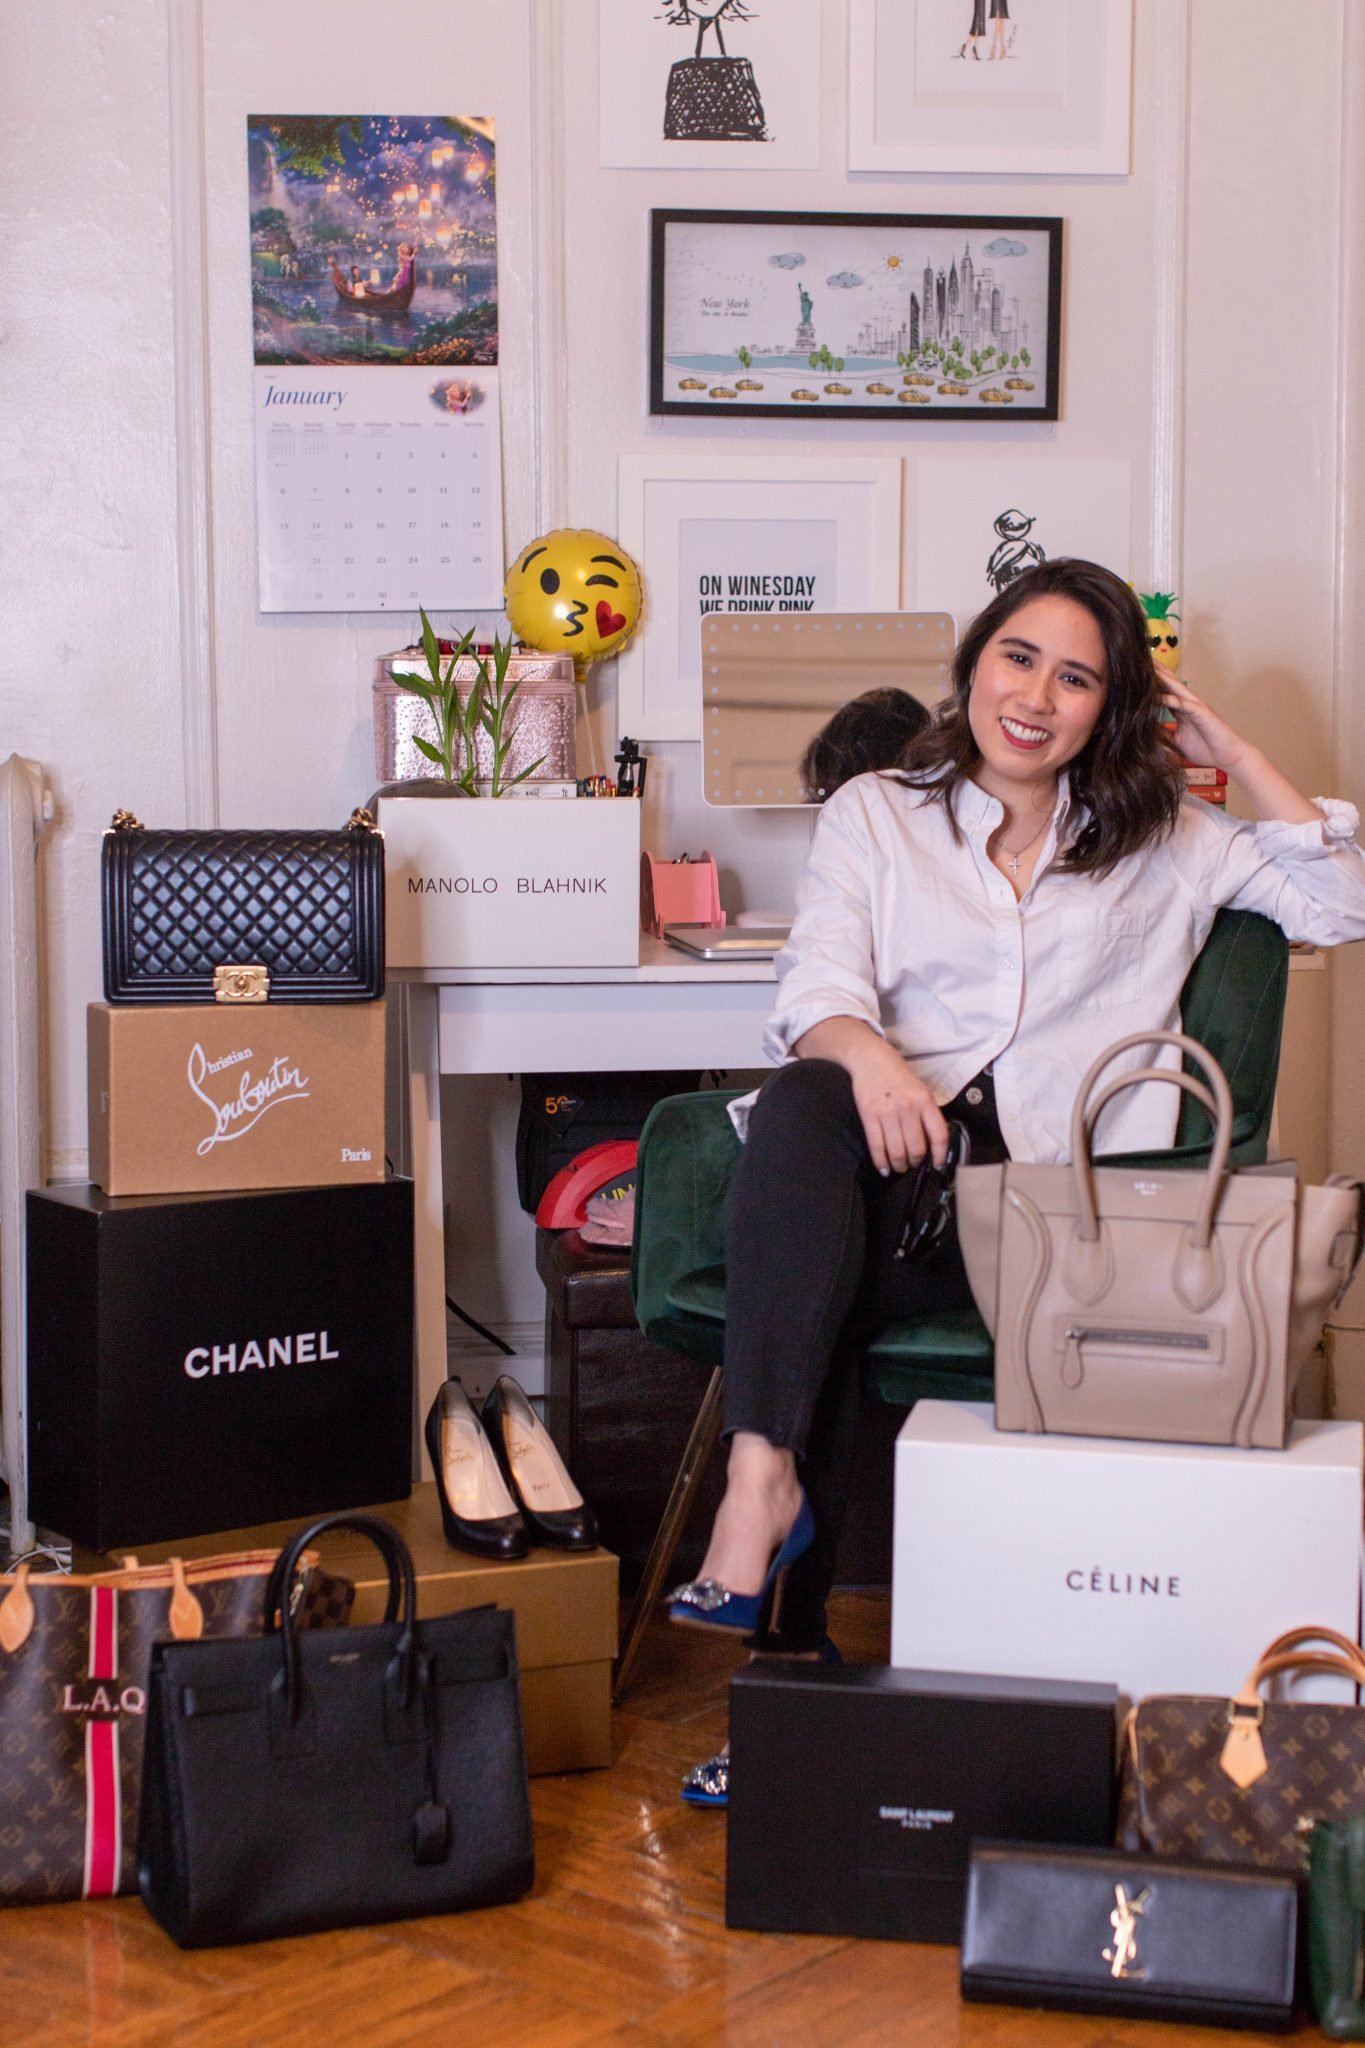 Luxury Accessories featured by US fashion blogger Live Laugh Linda; Image of woman sitting in living room with purses.